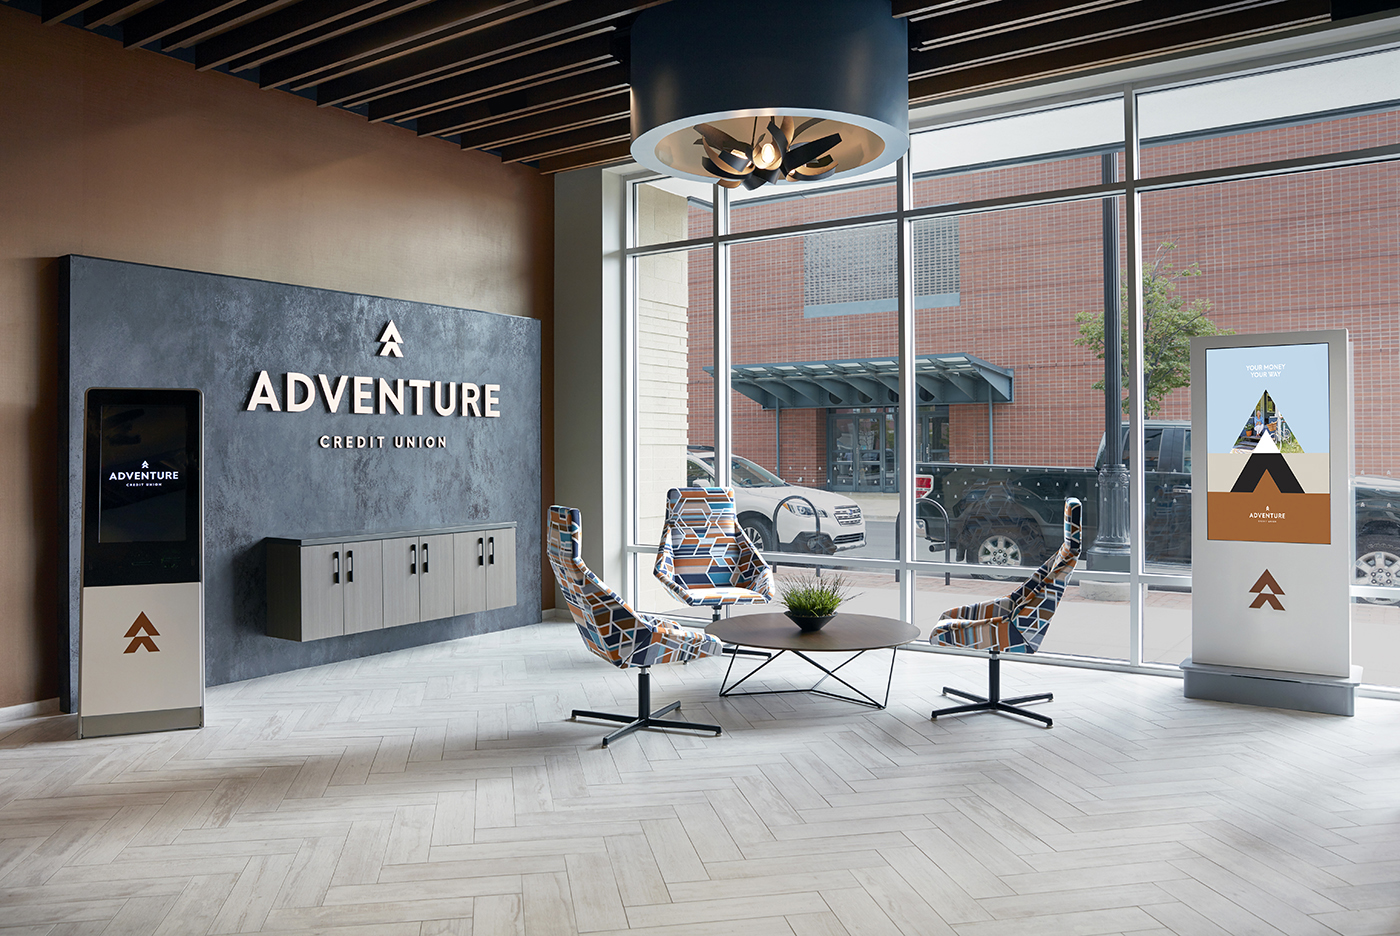 Adventure Credit Union Interior